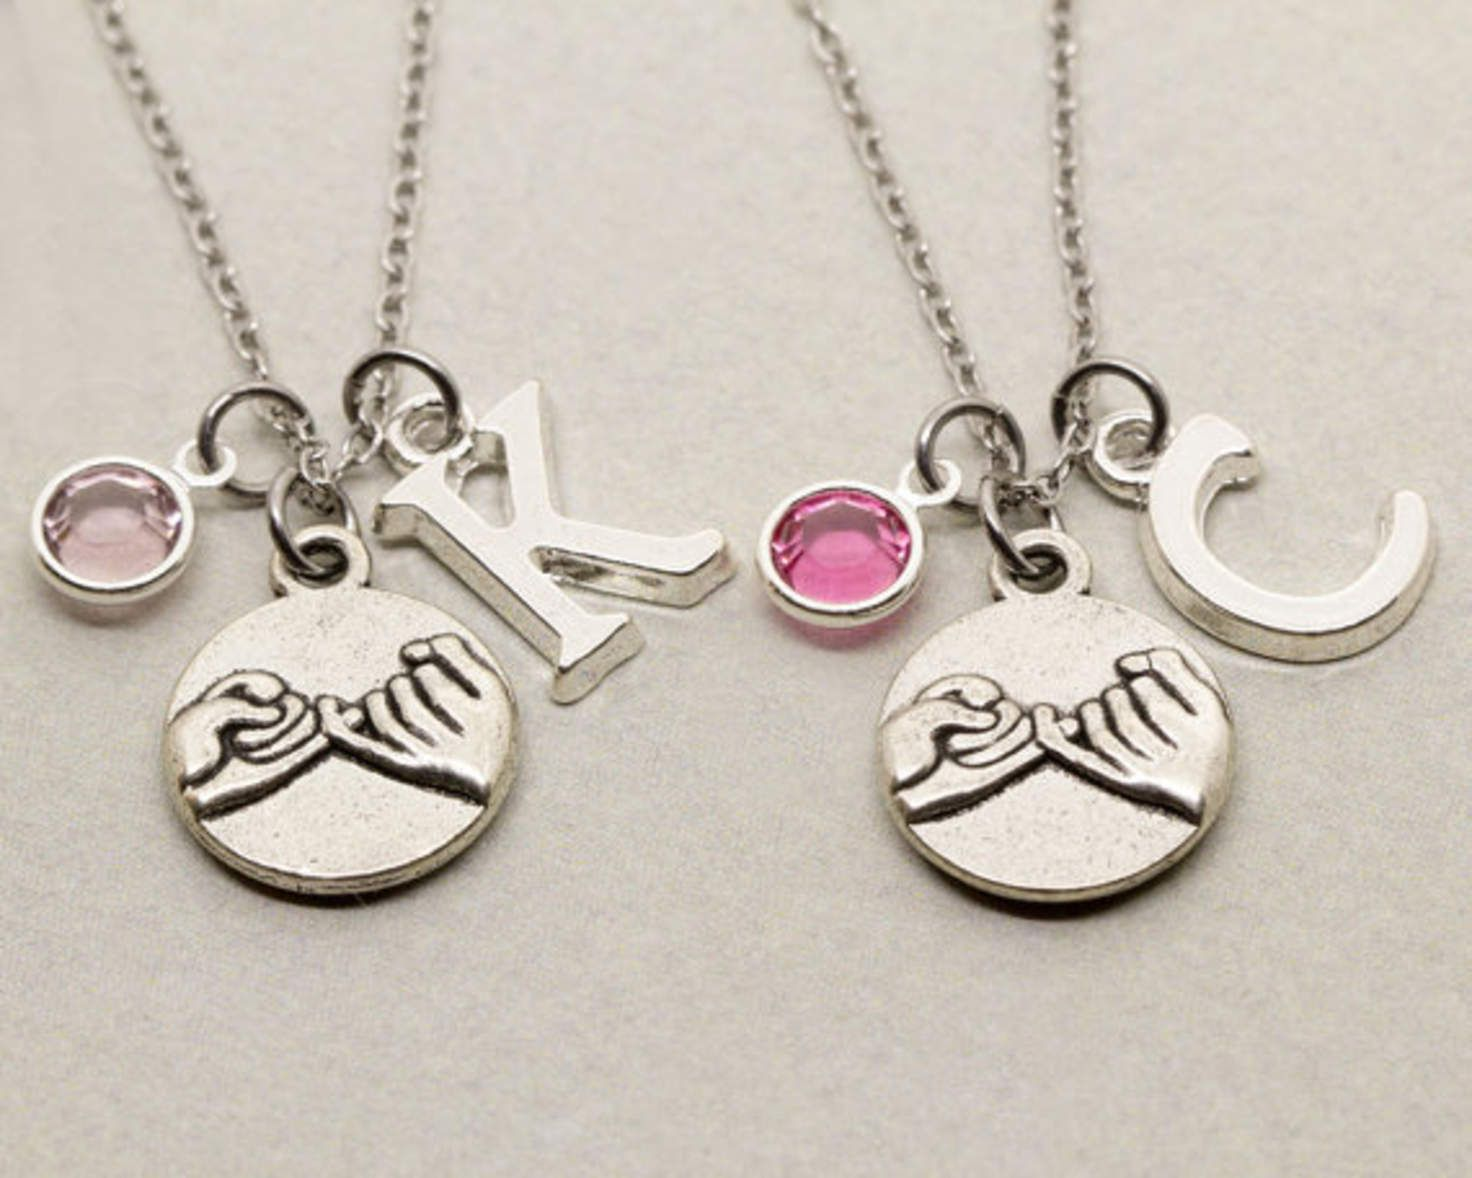 Best Friend Gift 2 Best Friends Pinky Promise Necklaces